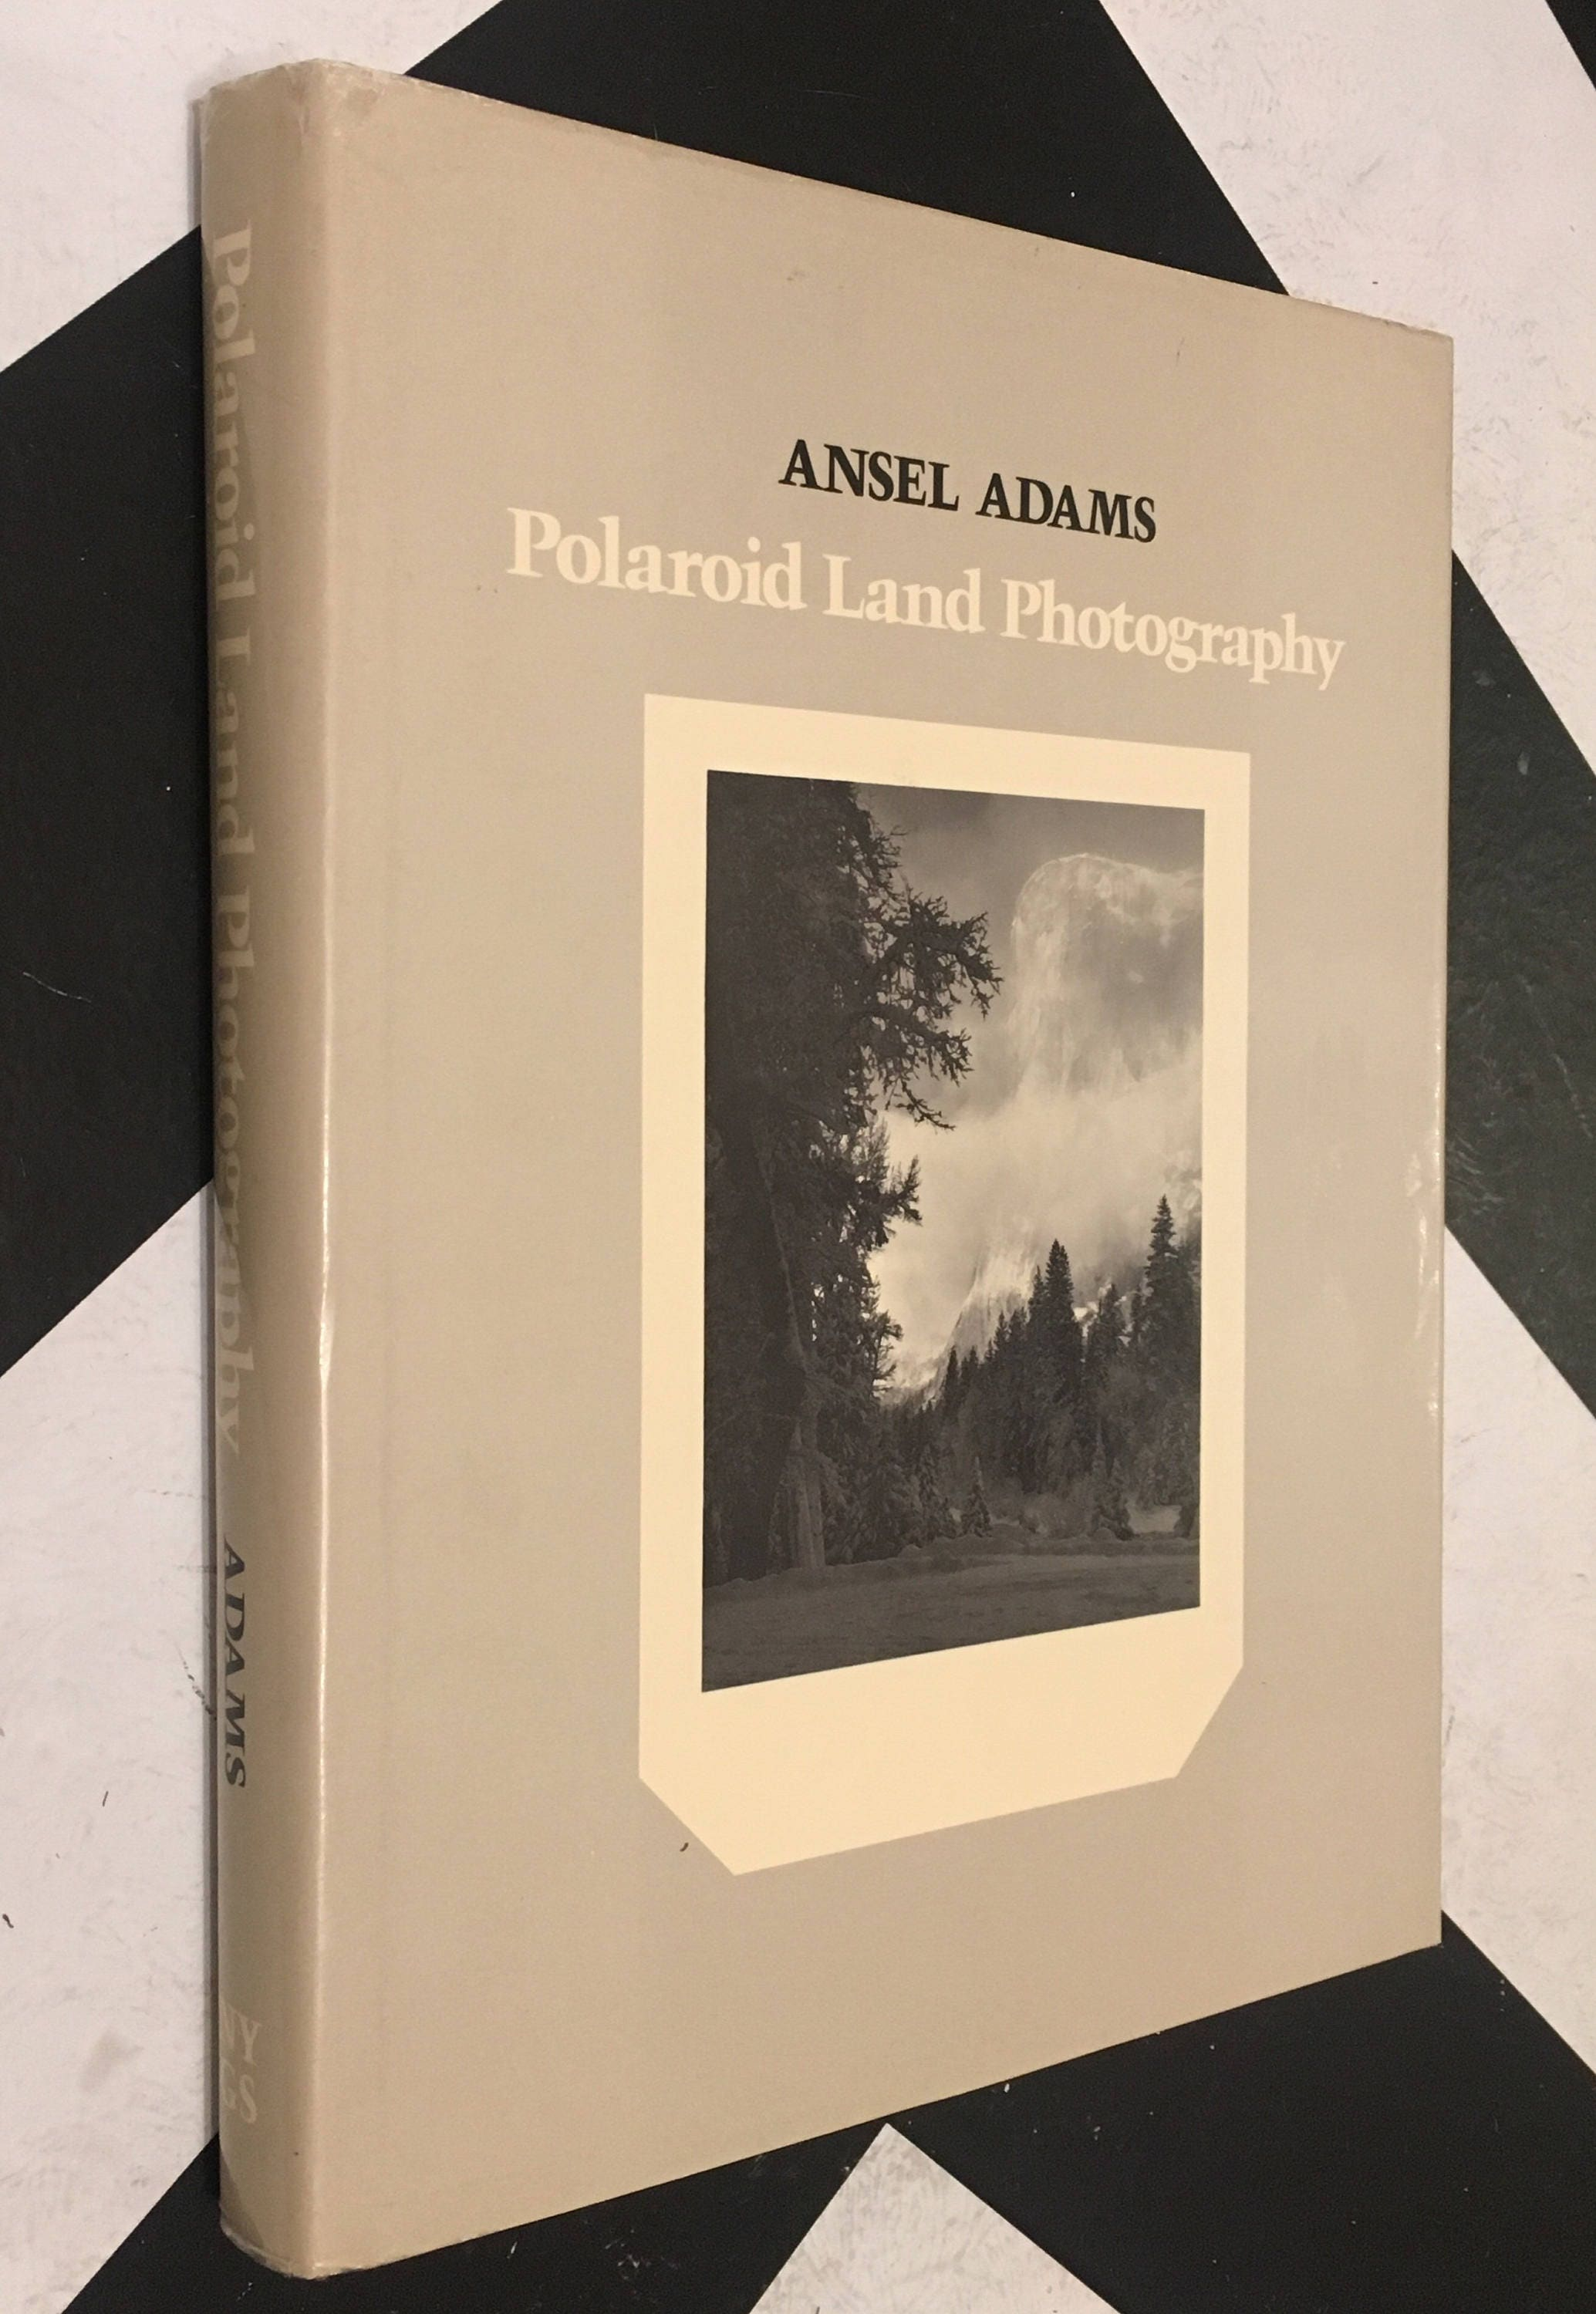 Polaroid Land Photography By Ansel Adams With The